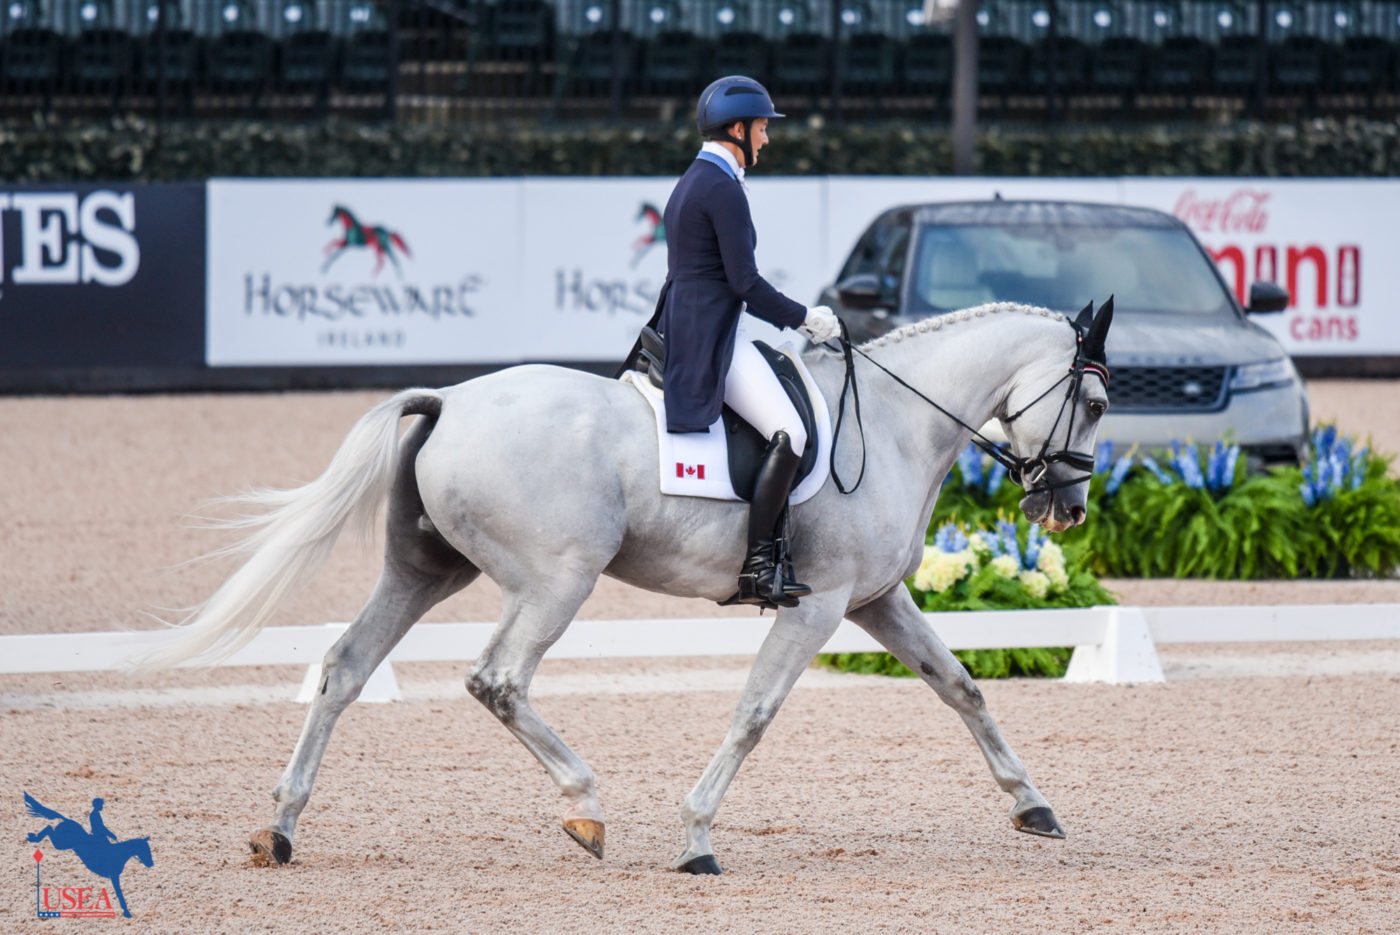 25th - Colleen Loach and Qorry Blue d'Argouges (CAN) - 34.4